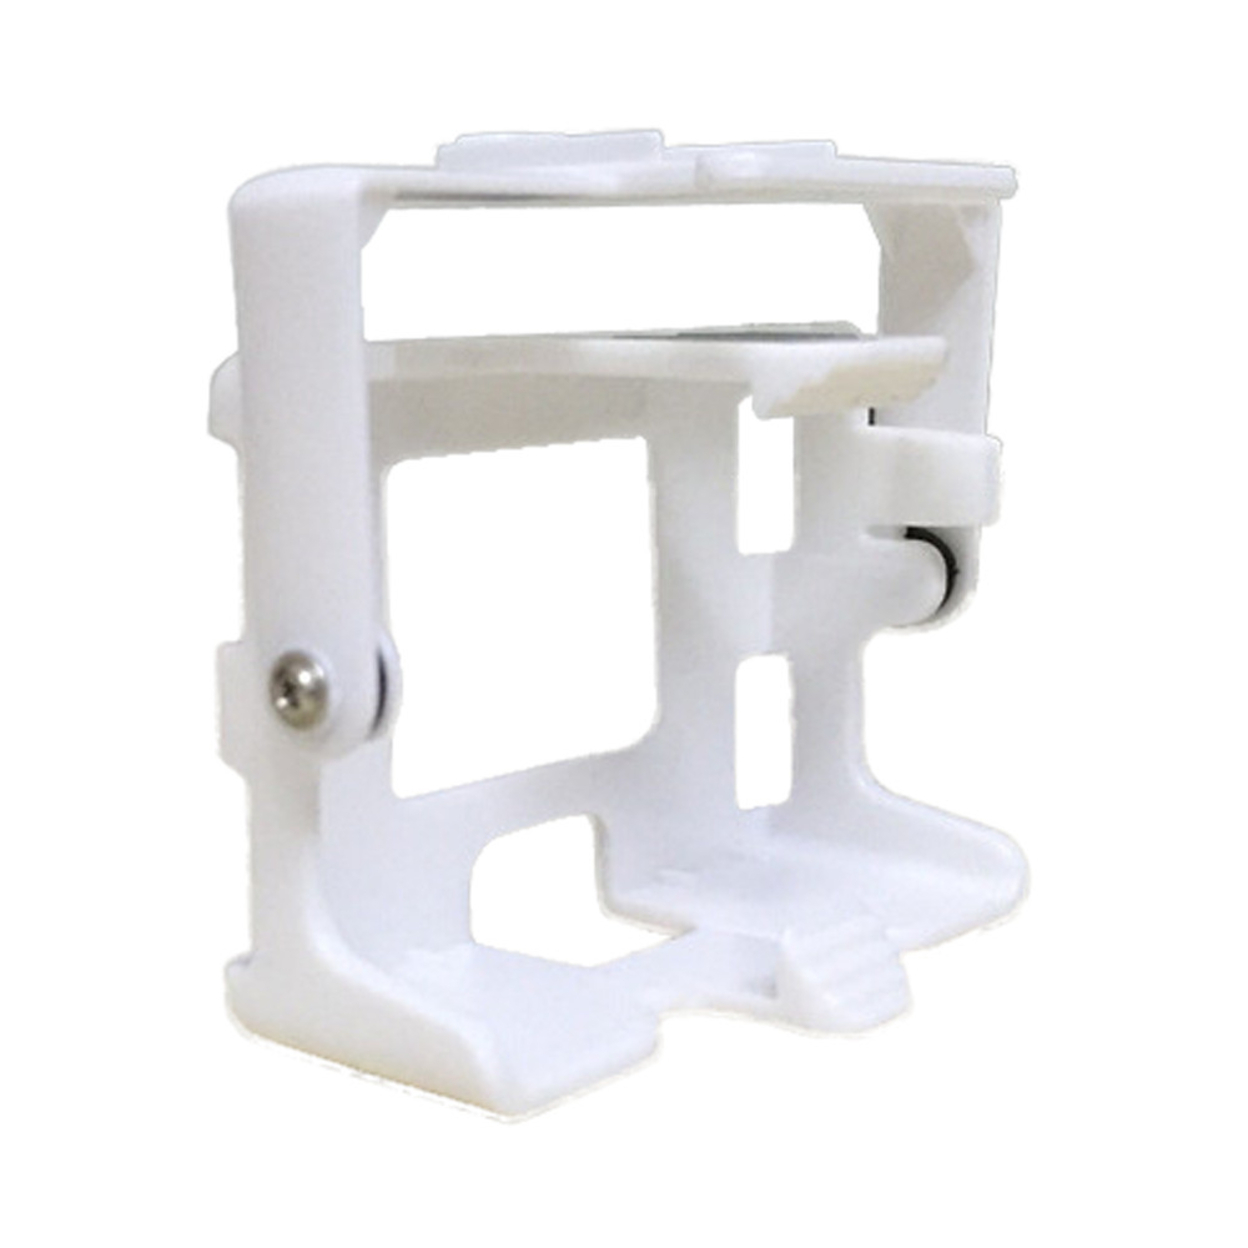 Camera Holder With Gimble/gimbal For Mjx X101 Quadcopter Drone Helicopter